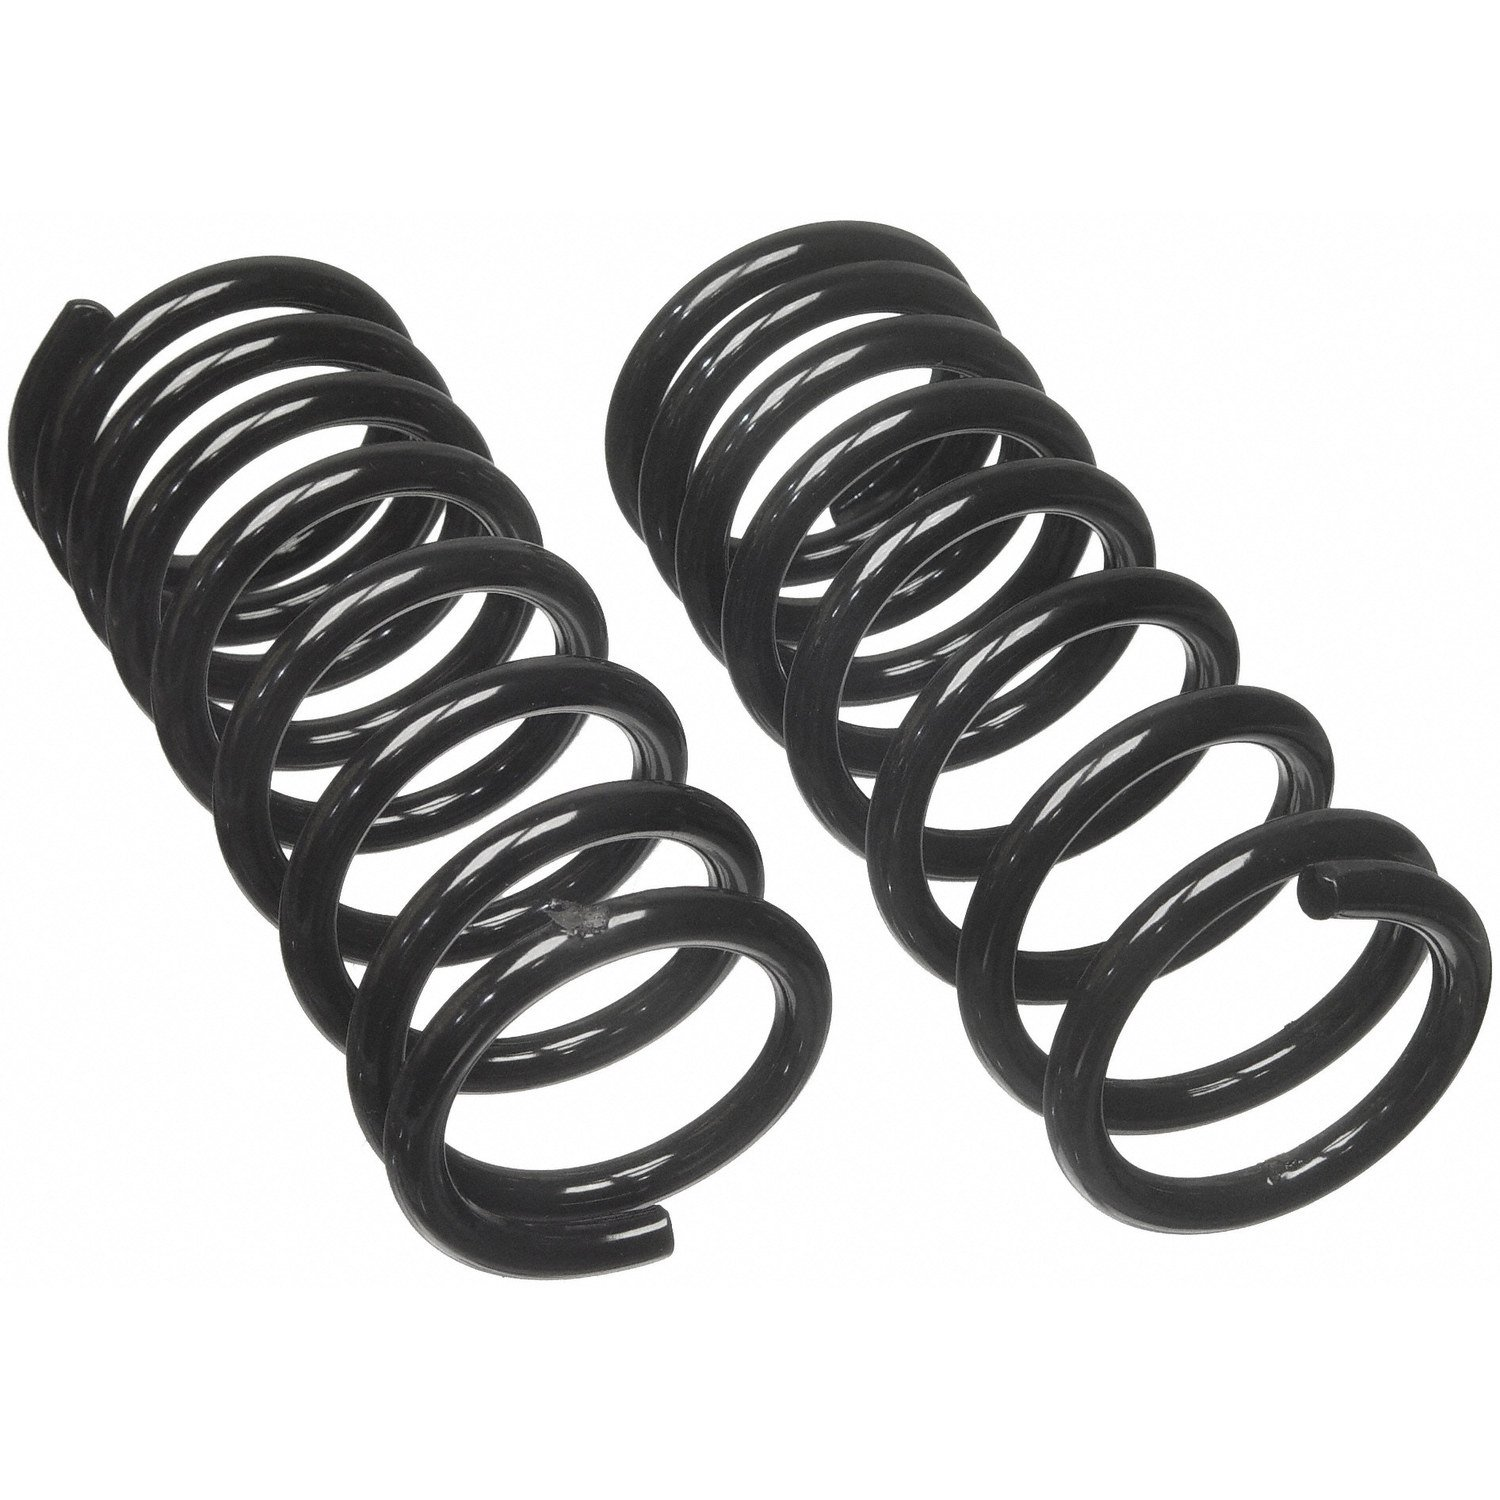 Moog Cc861 Coil Spring Set For Ford Thunderbird Mercury Cougar Ebay 1999 Wiring